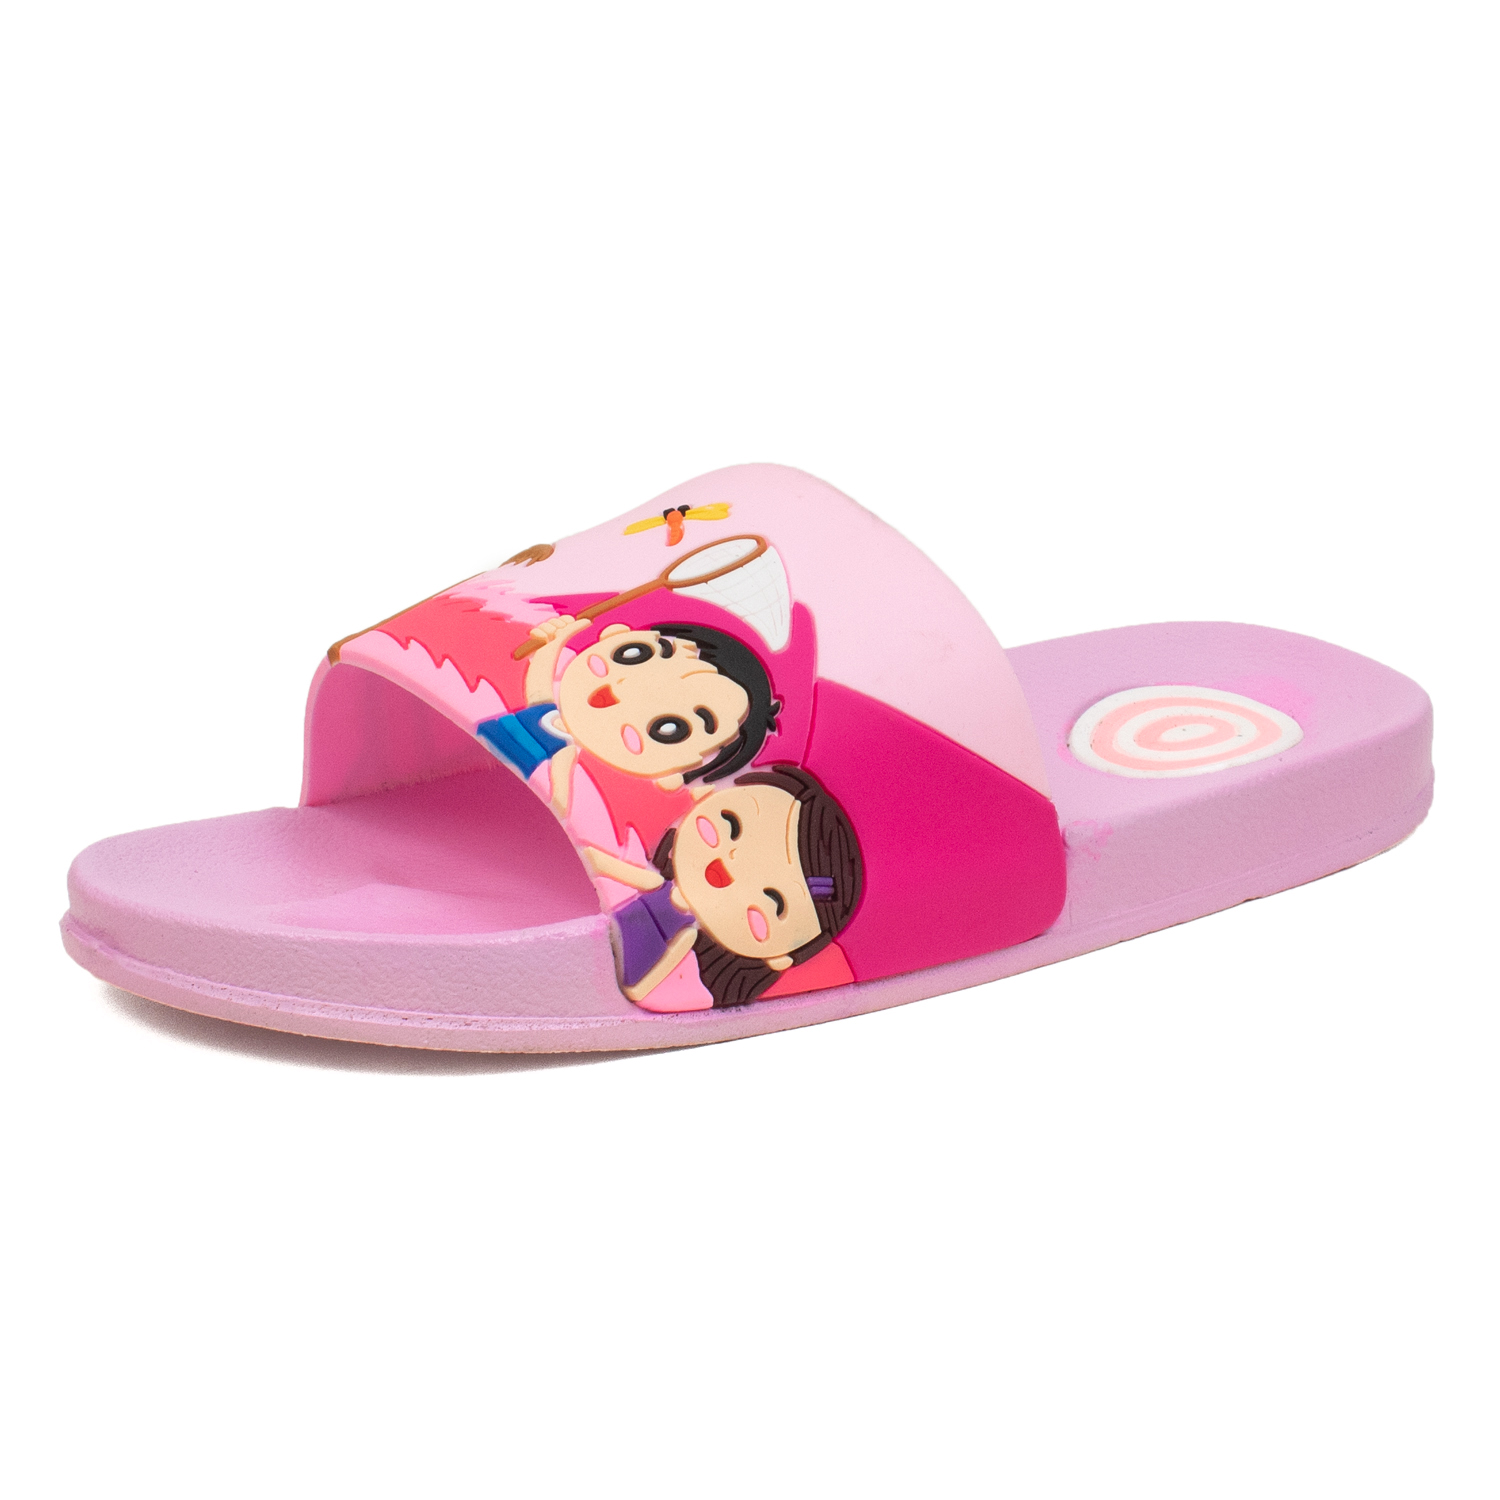 Foot Trends Casual Slippers For Kids B-G-Multi-31-35 (Multi, 31-35, 10 PAIR)